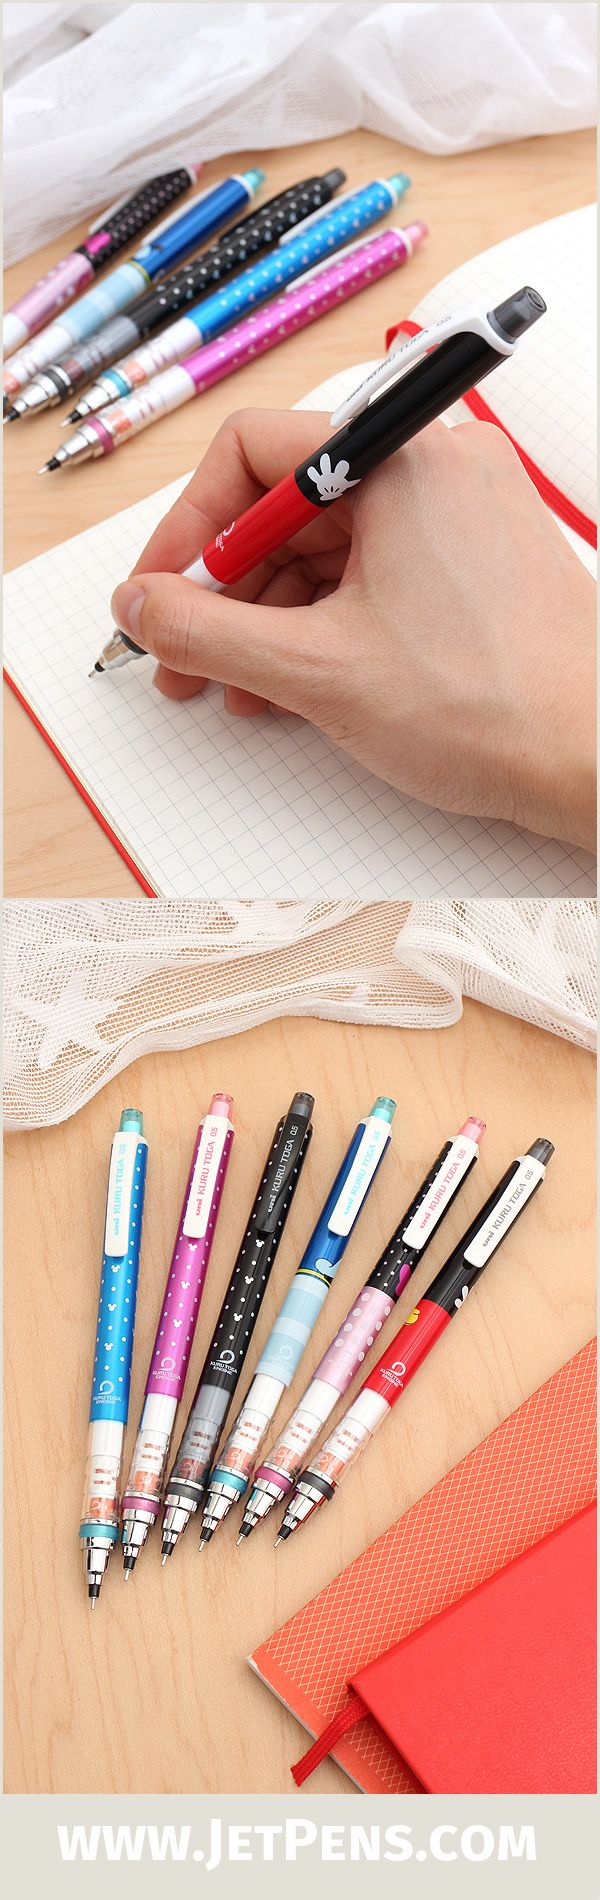 77 Best Come Images On Pinterest Gameboy Iphone Chubby Daisy Tsum Custom Phone Case Bumber Pink The Disney Uni Kuru Toga Mechanical Pencils Are Perfect For Fans